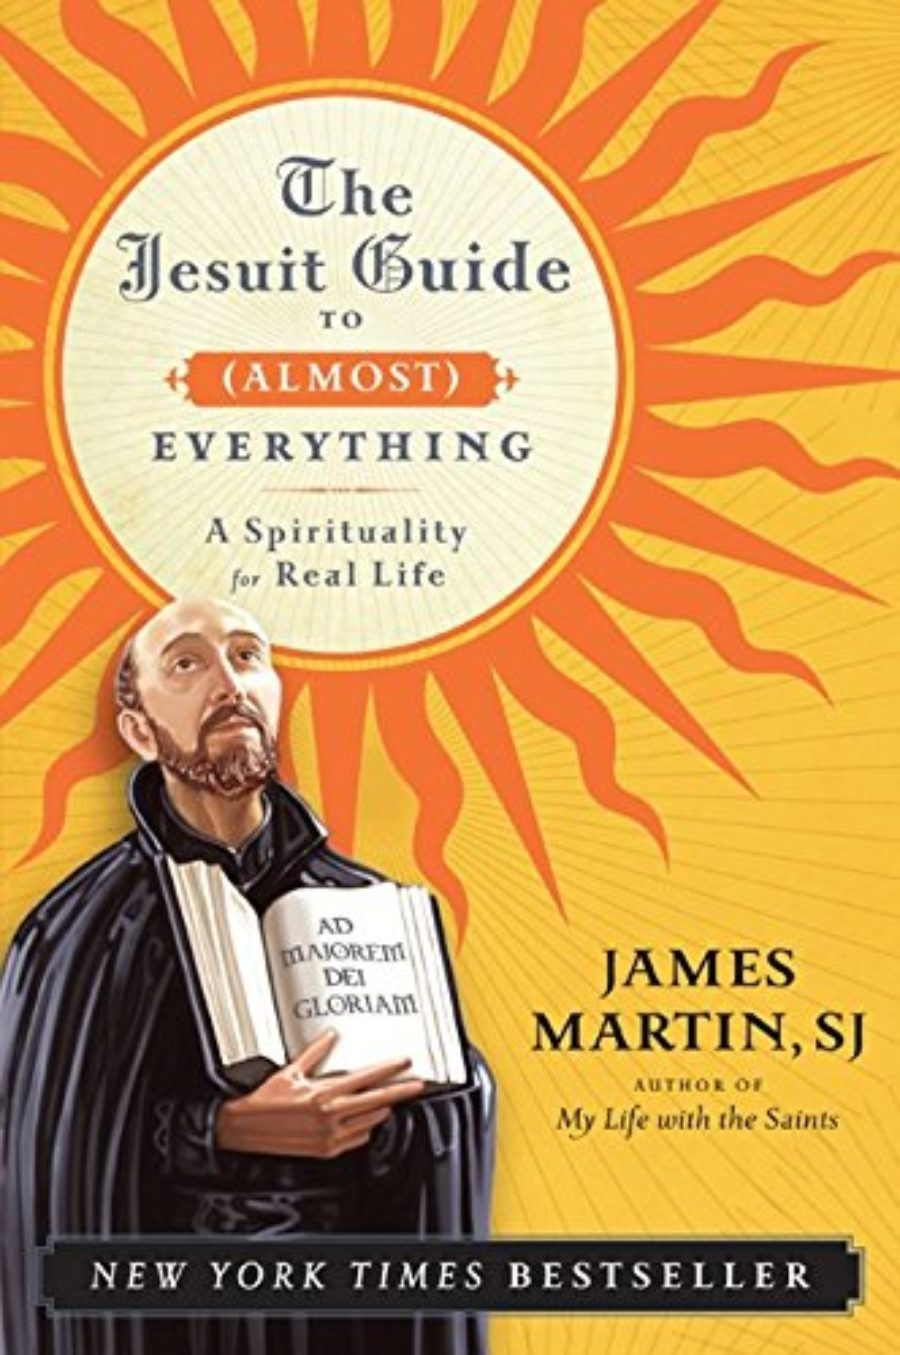 Cover of The Jesuit Guide to (Almost) Everything: A Spirituality for Real Life